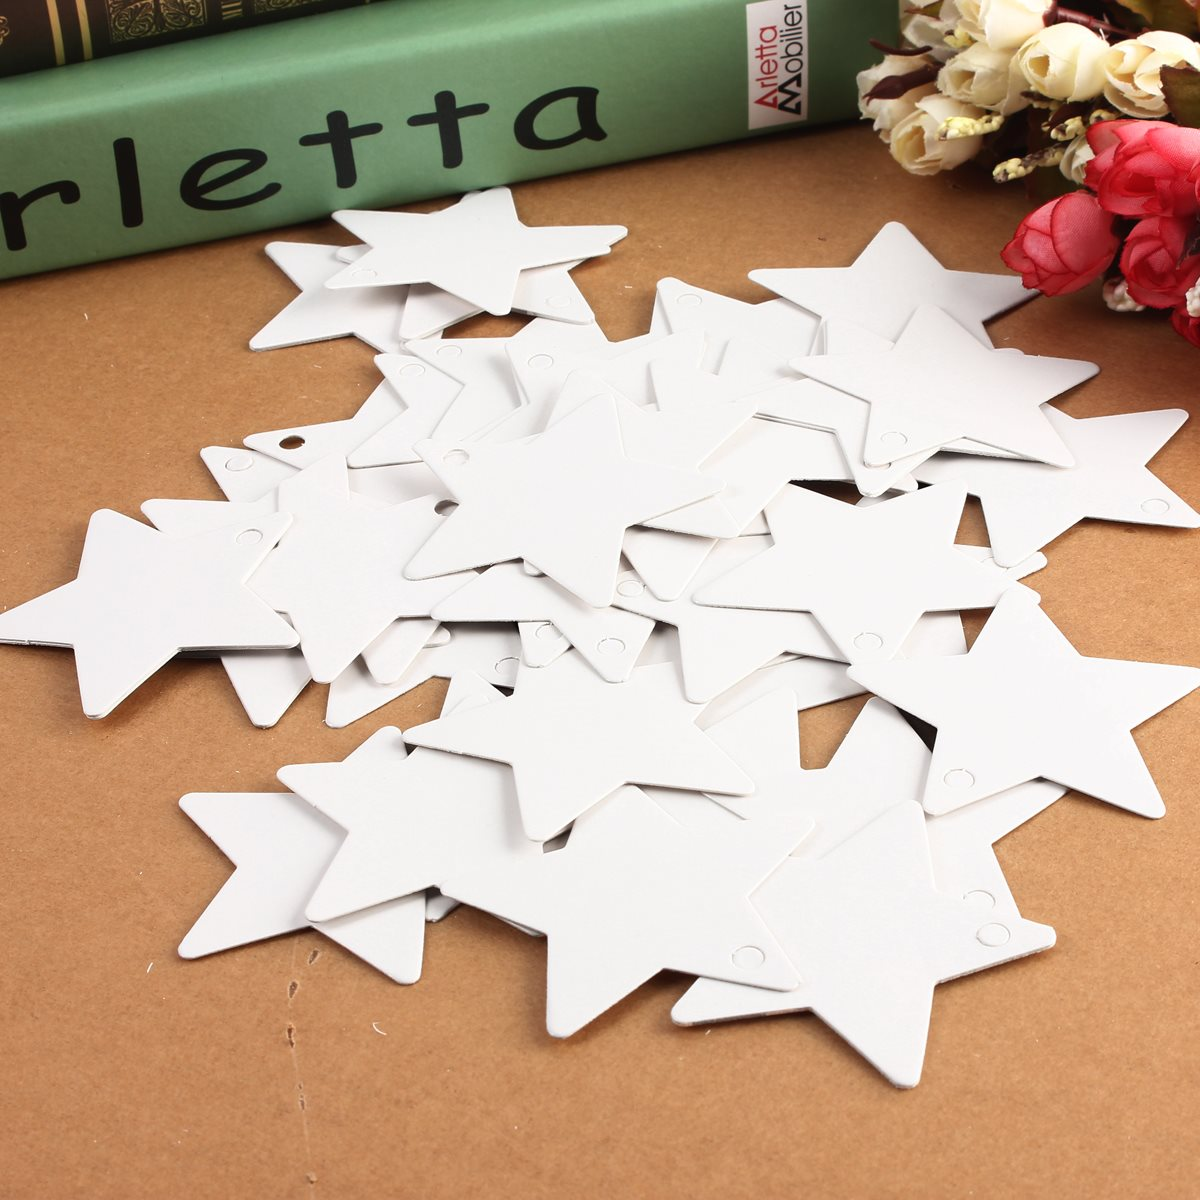 50 pcs/lot White Kraft Paper Tags Stars Blank Wedding Party Favour Gift Pricing Label Card Etichette Luggage Labels